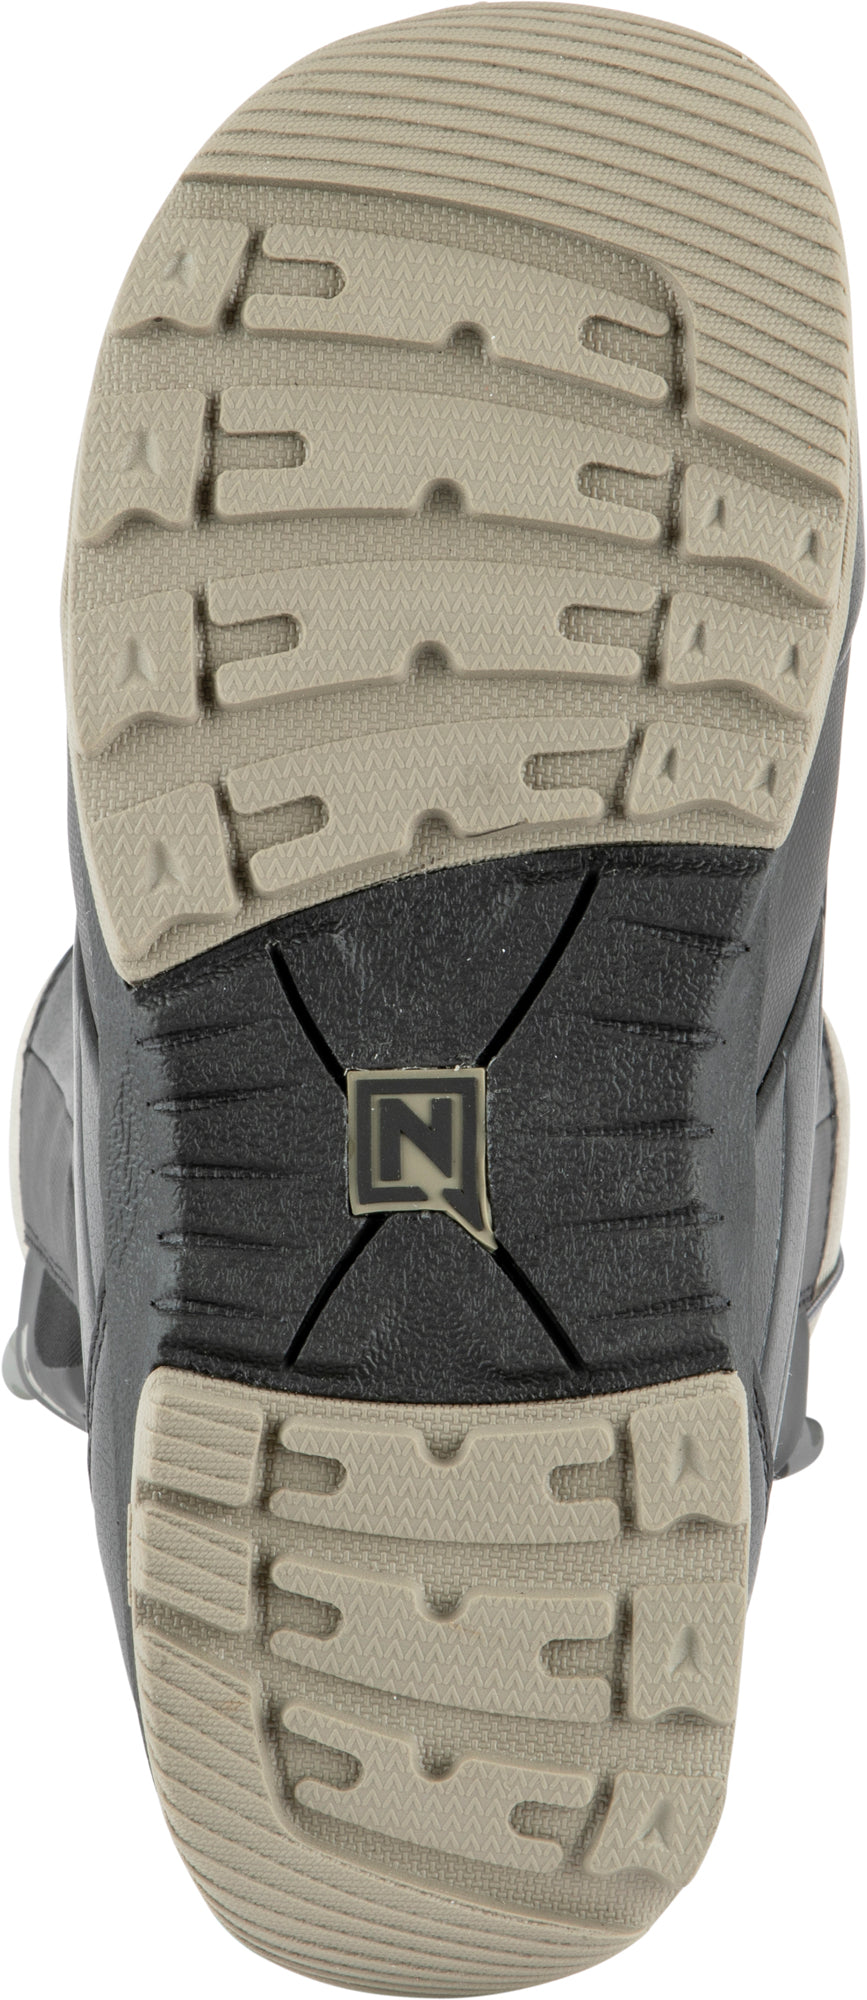 2021 Nitro Crown Tls Snowboard Boots in Black